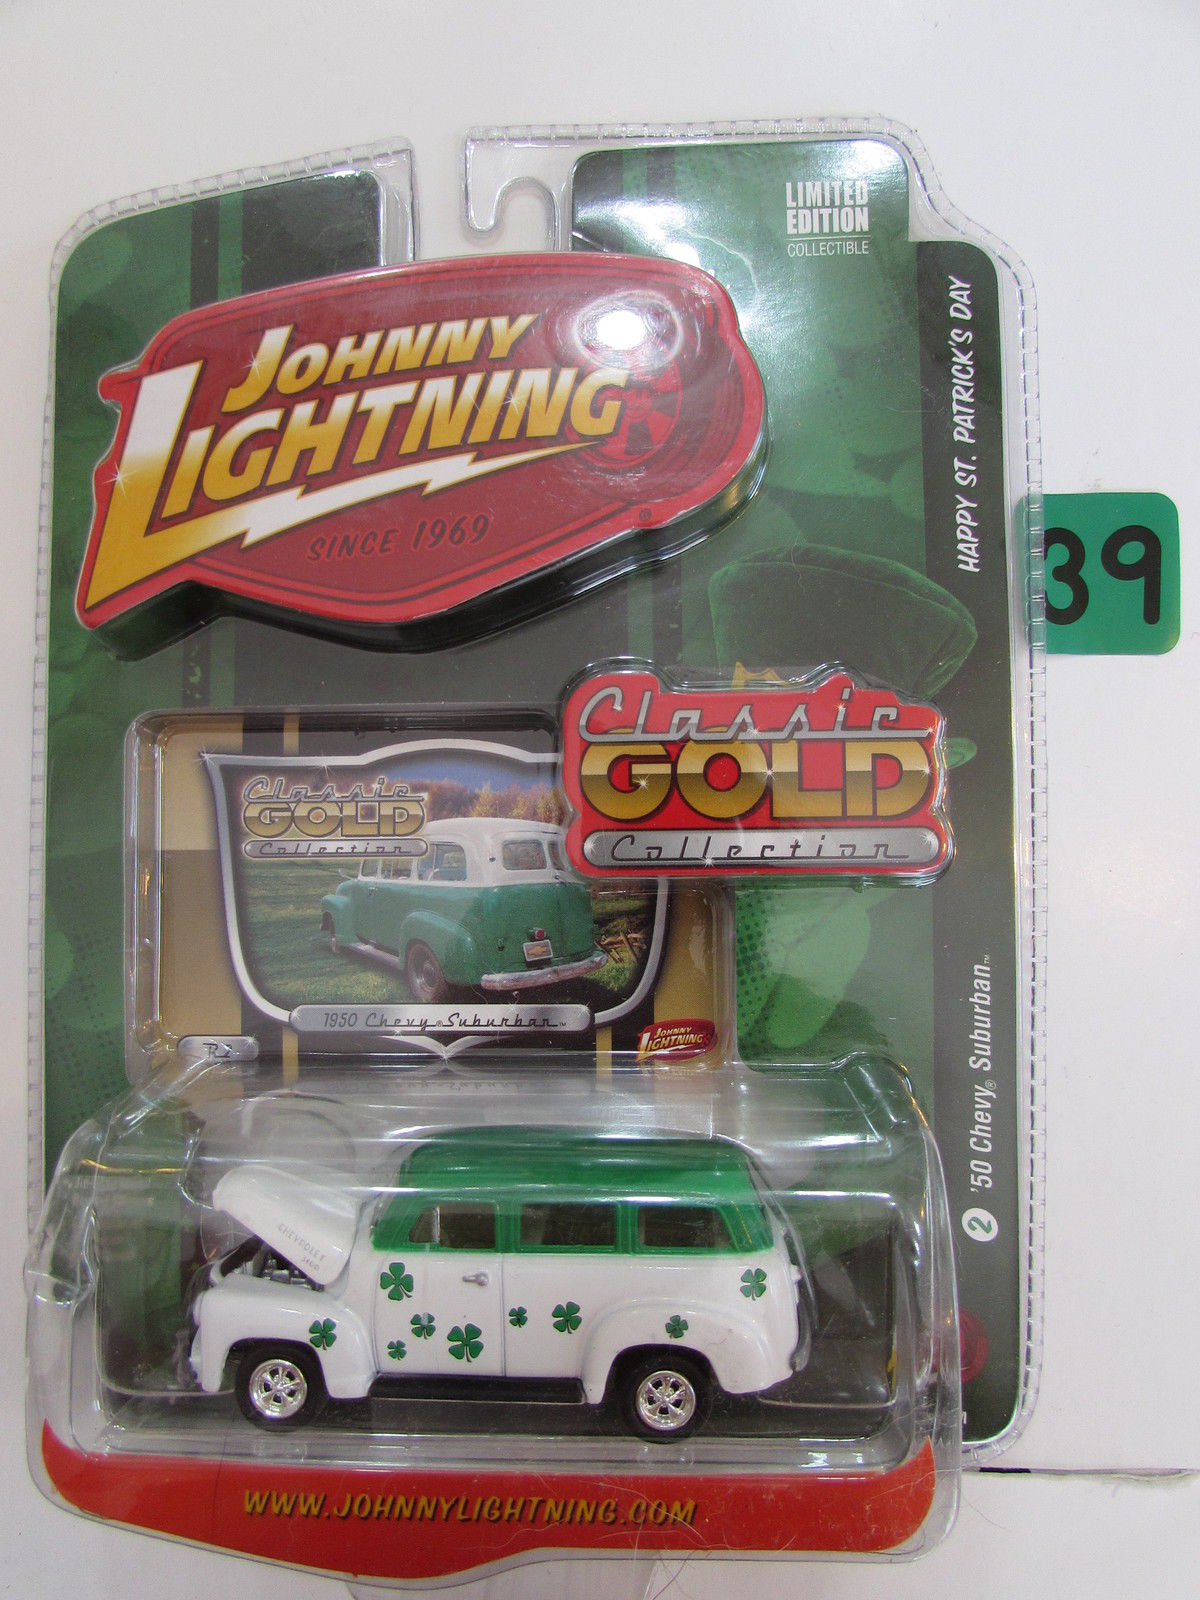 JOHNNY LIGHTNING 2008 CLASSIC GOLD COLLECTION '50 CHEVY SUBURBAN #2